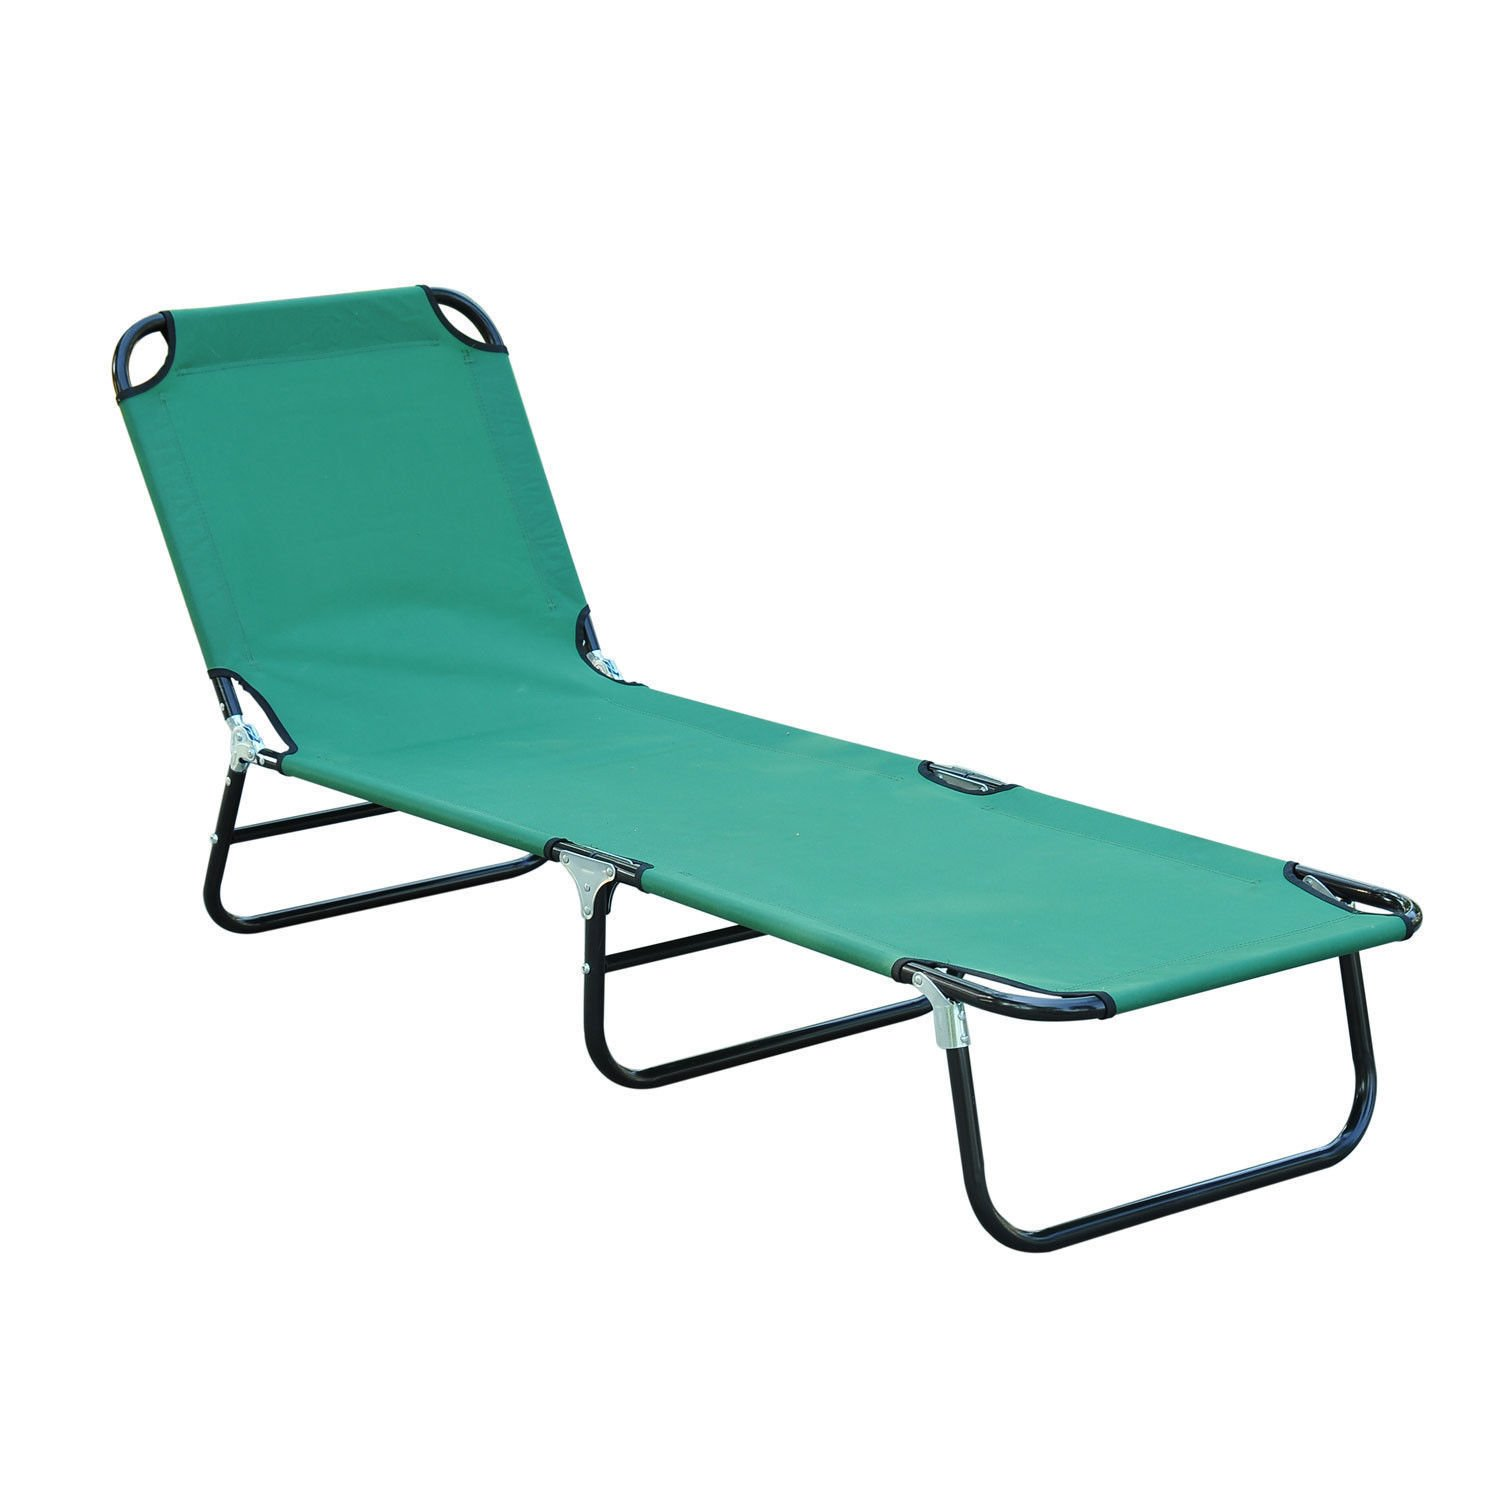 totoshop Outdoor Sun Chaise Lounge Recliner Patio Camping Cot Bed Beach Pool Chair Fold